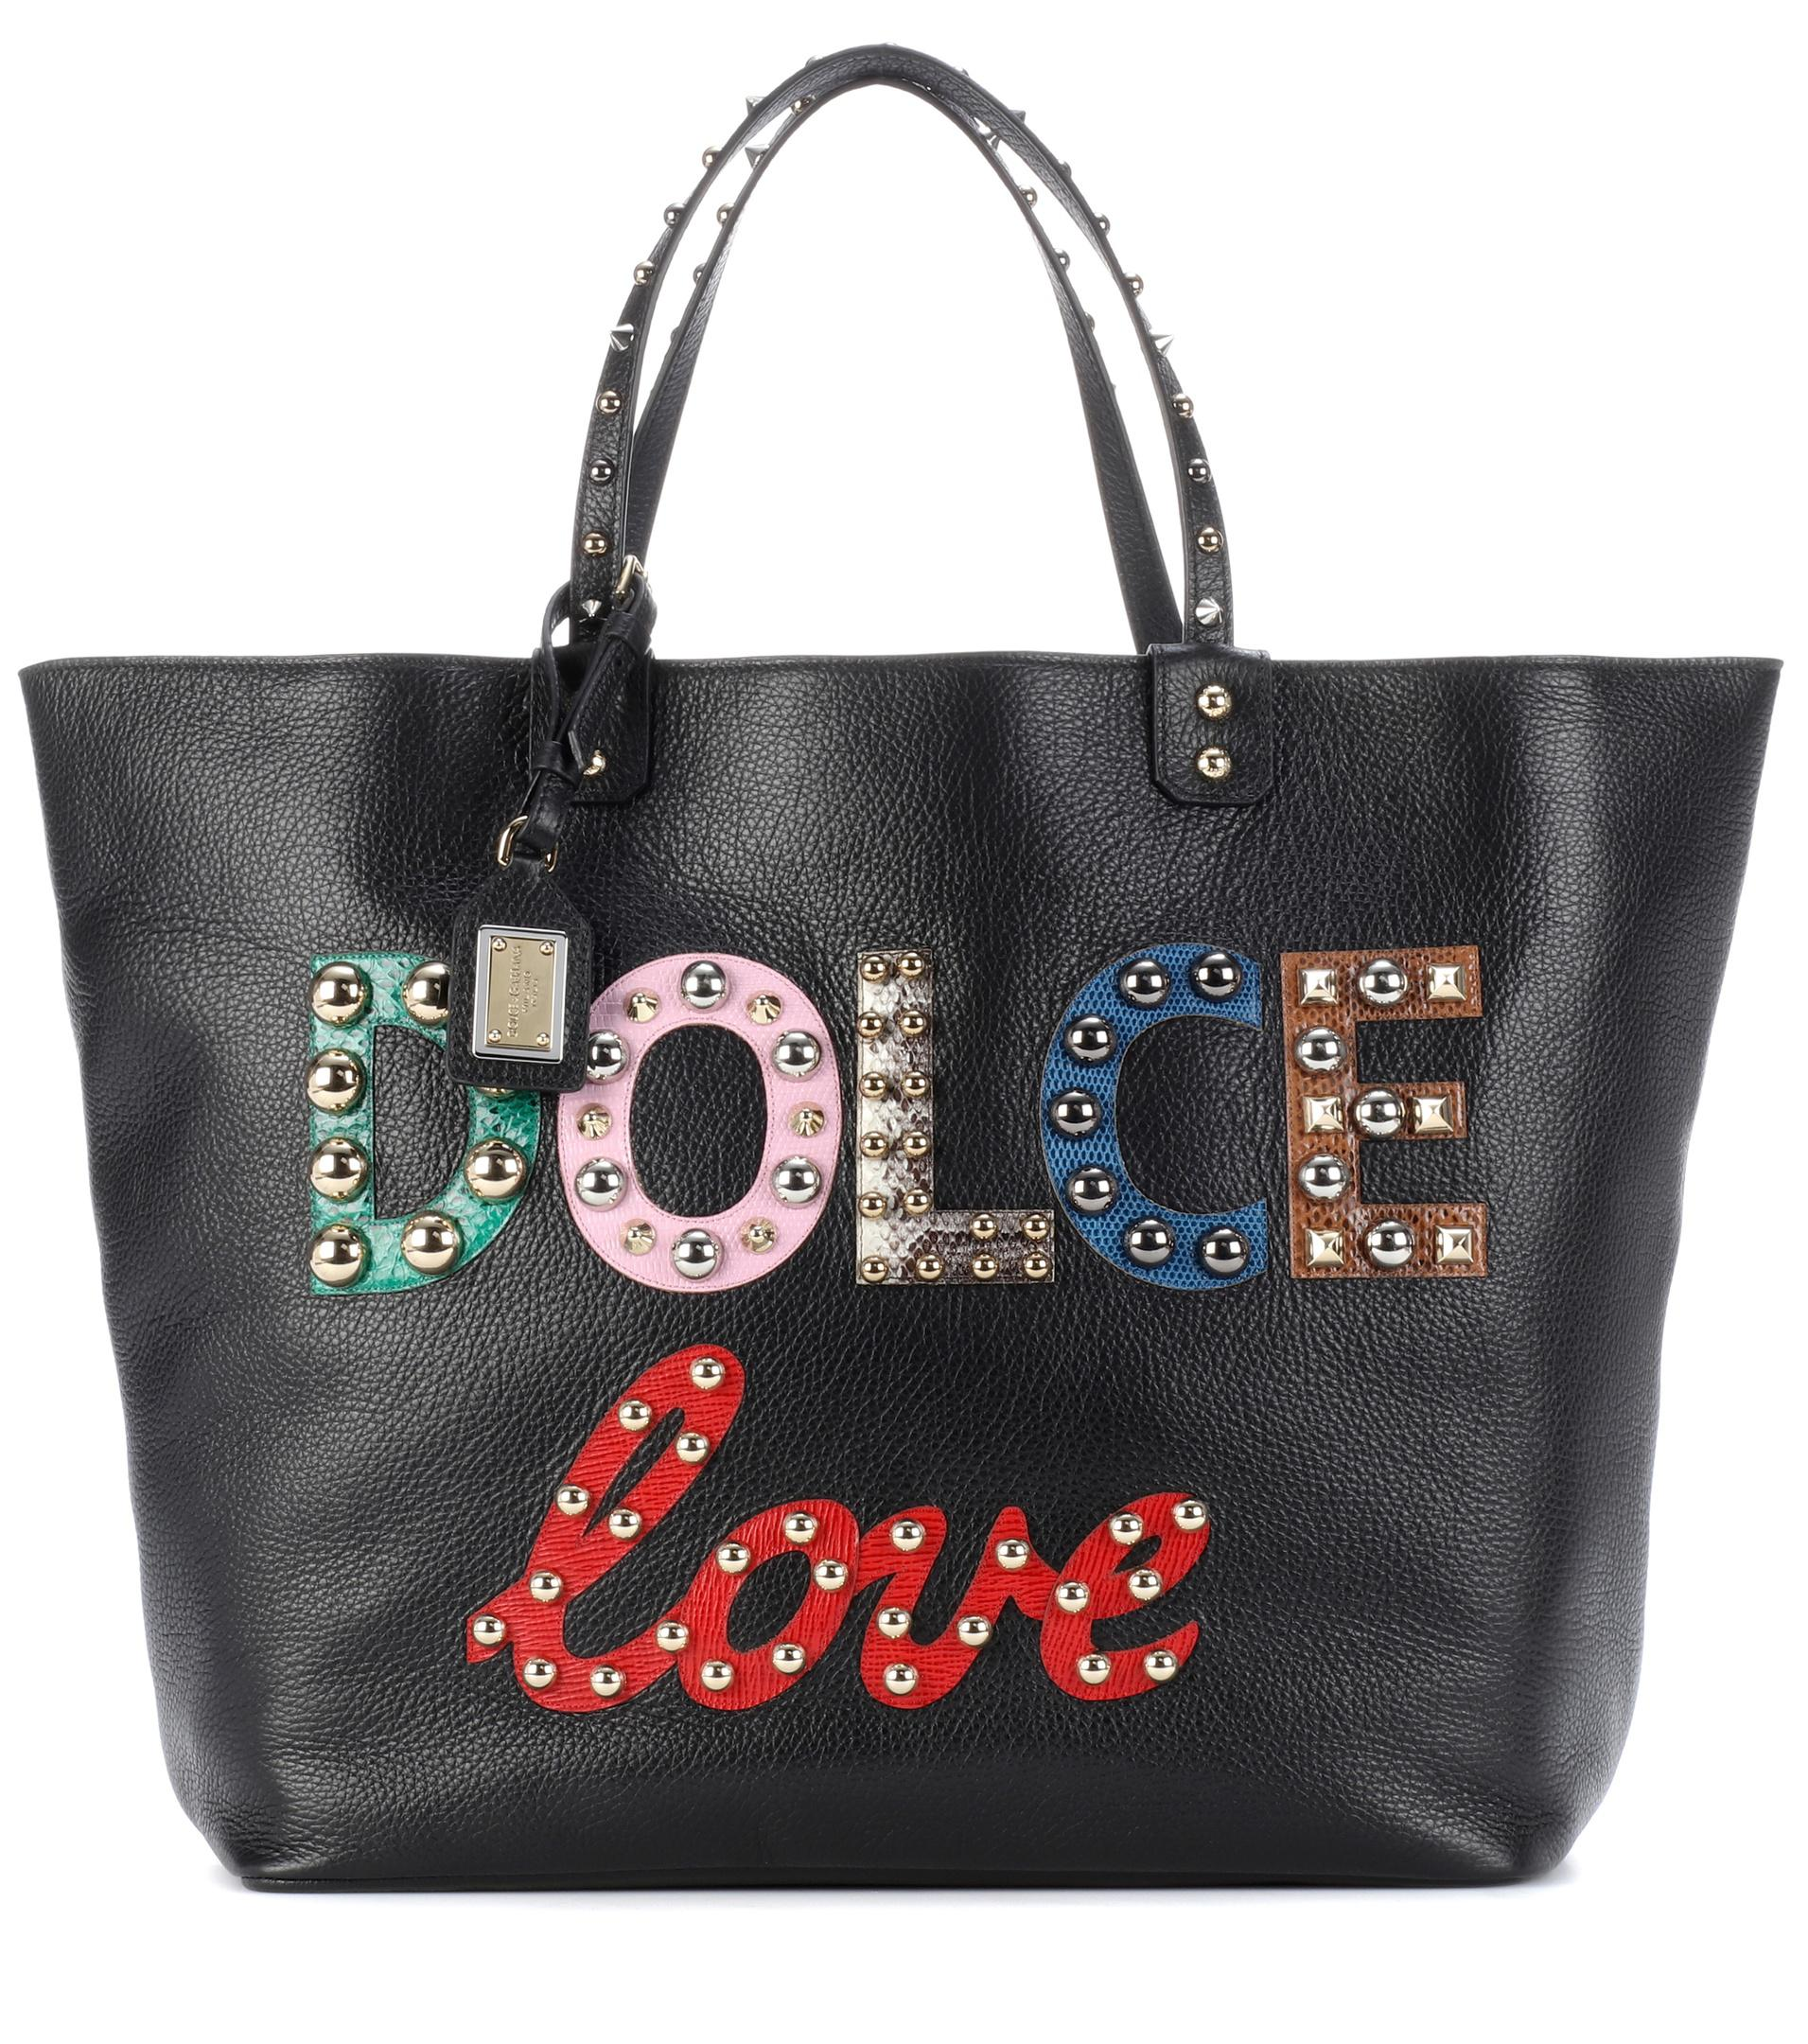 Lyst - Dolce   Gabbana Beatrice Embellished Leather Shopper in Black 51aad96922